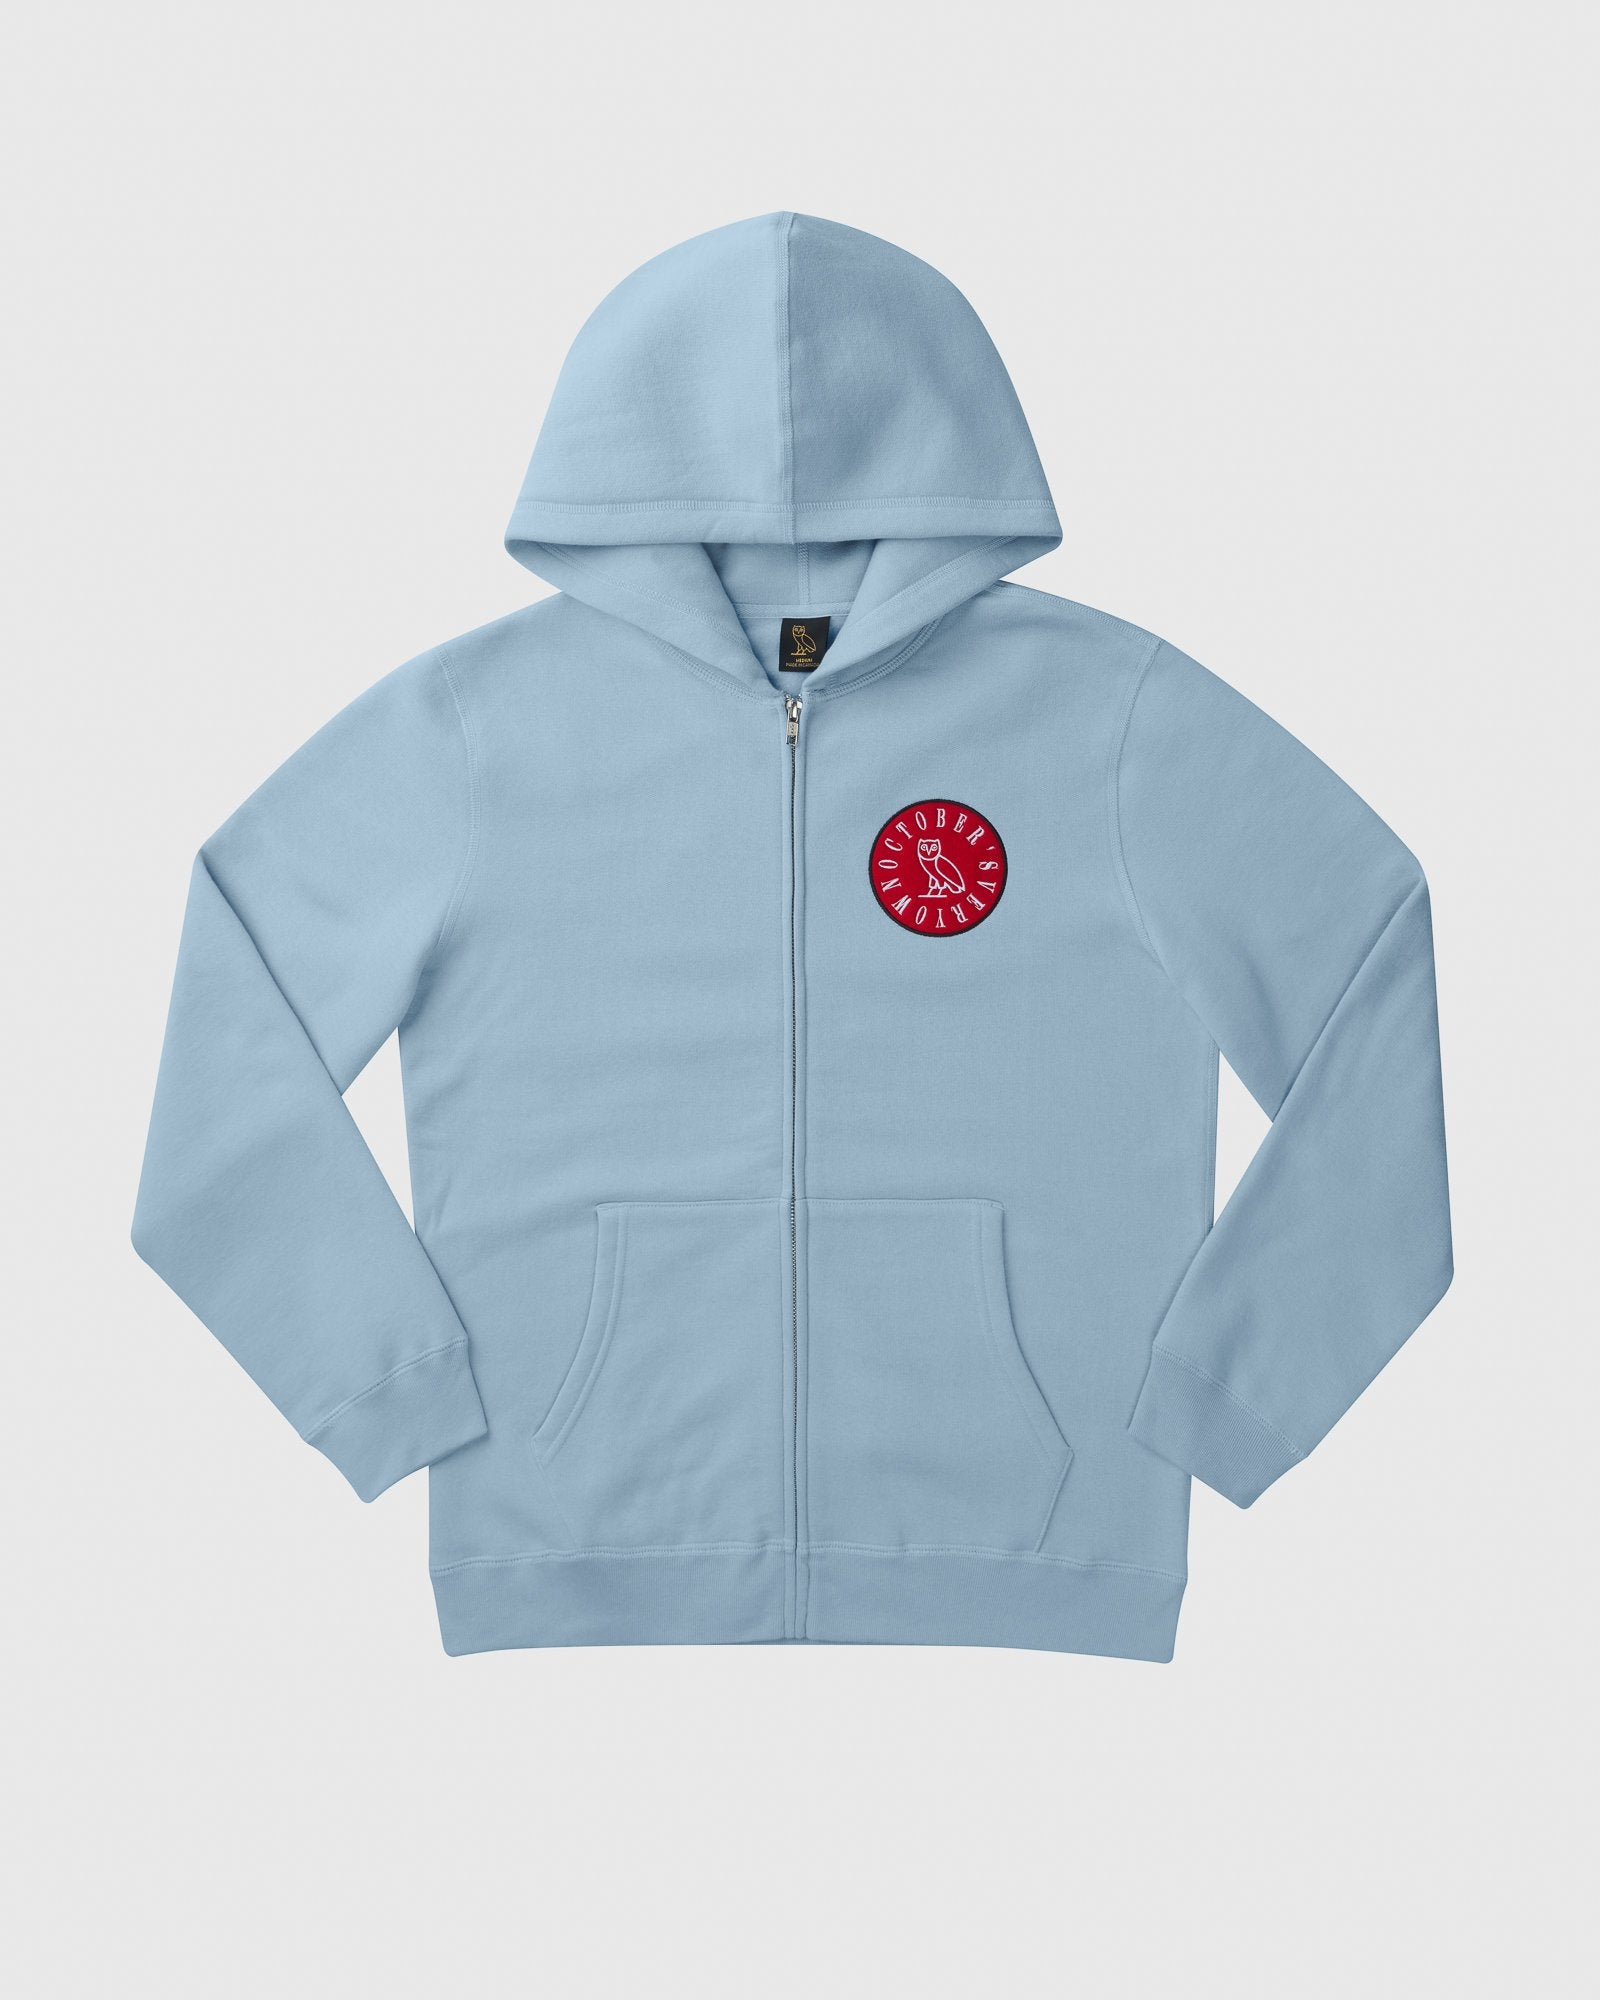 CIRCLE WORDMARK PATCH FULL-ZIP HOODIE - SKY BLUE IMAGE #1